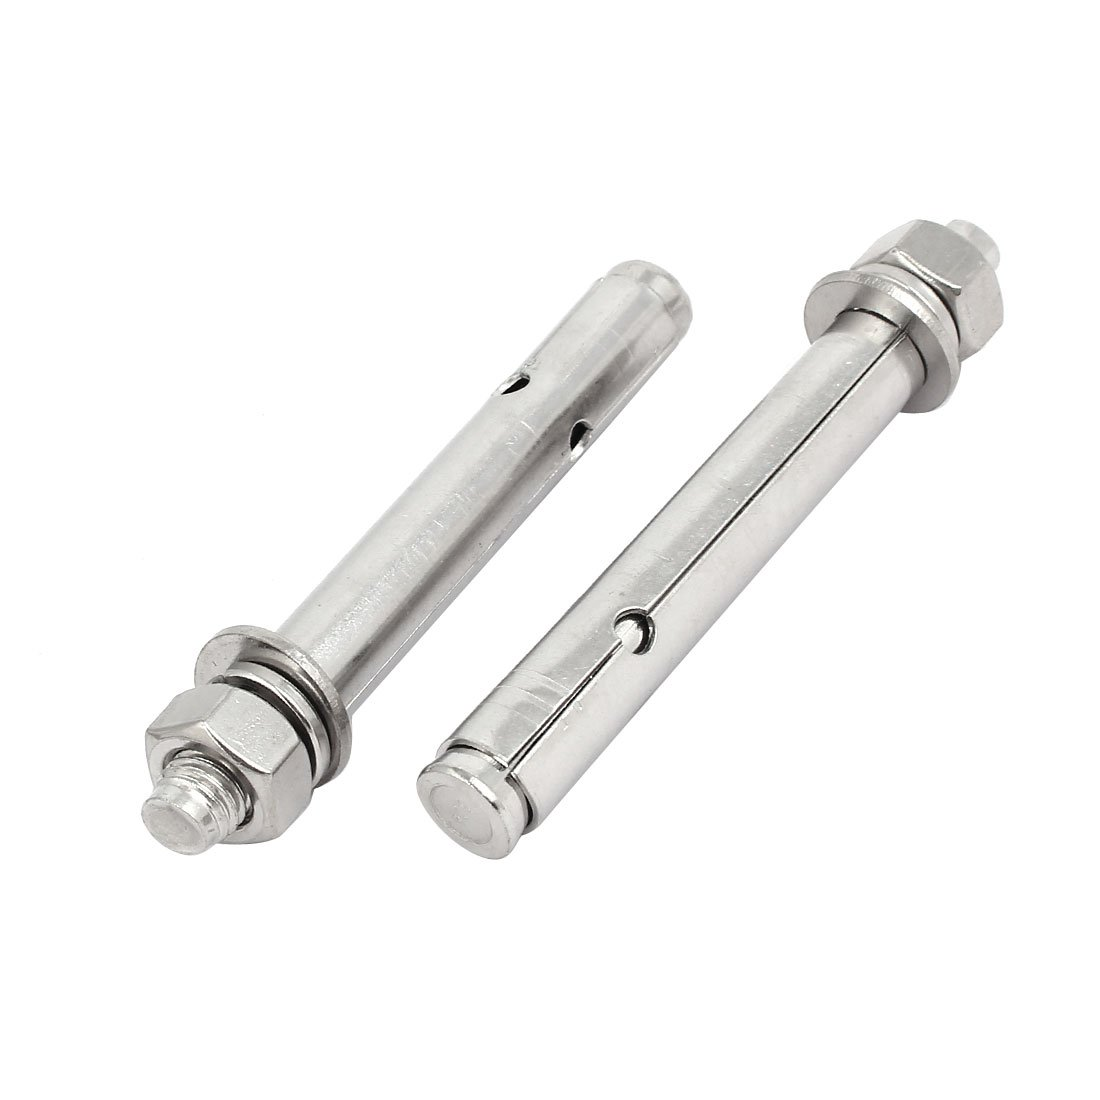 uxcell M12x120mm 304 Stainless Steel Air Condition Fitting Sleeve Anchor Expansion Bolt 2pcs